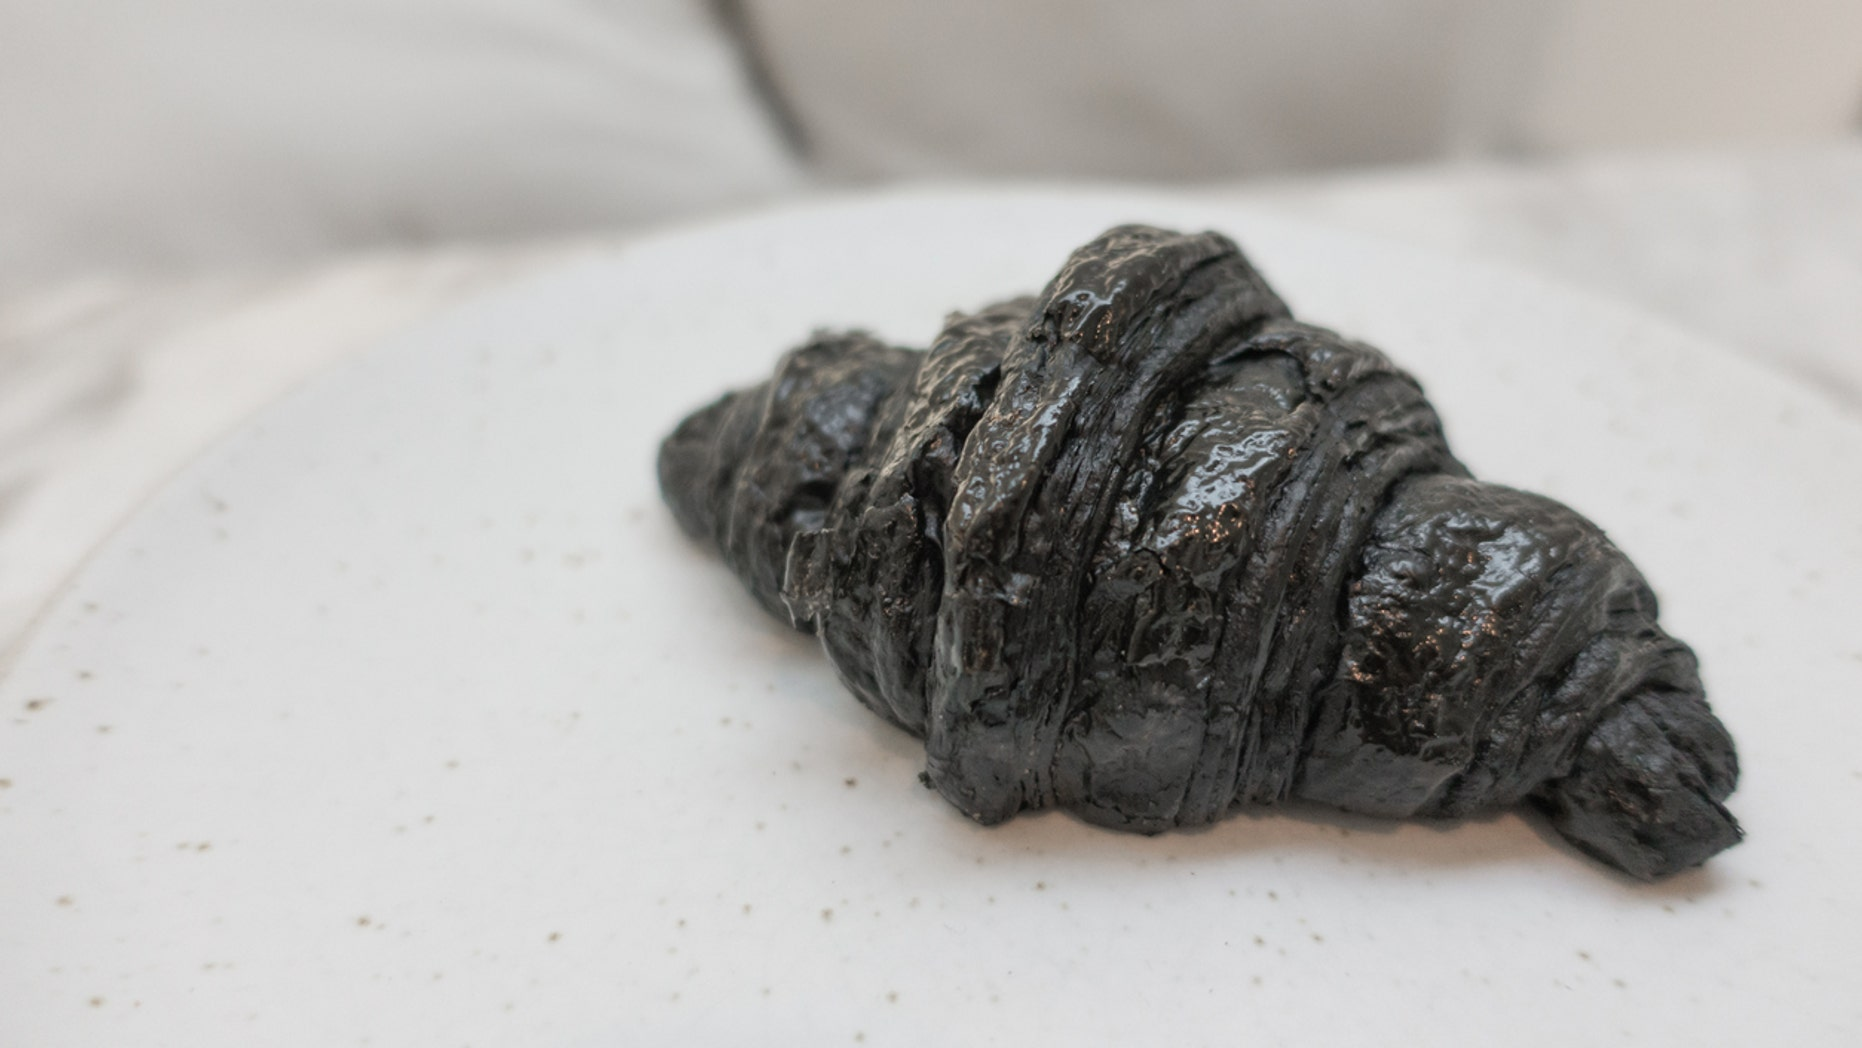 A cafe in London has debuted an activated charcoal vegan croissant that has some people losing their appetites.